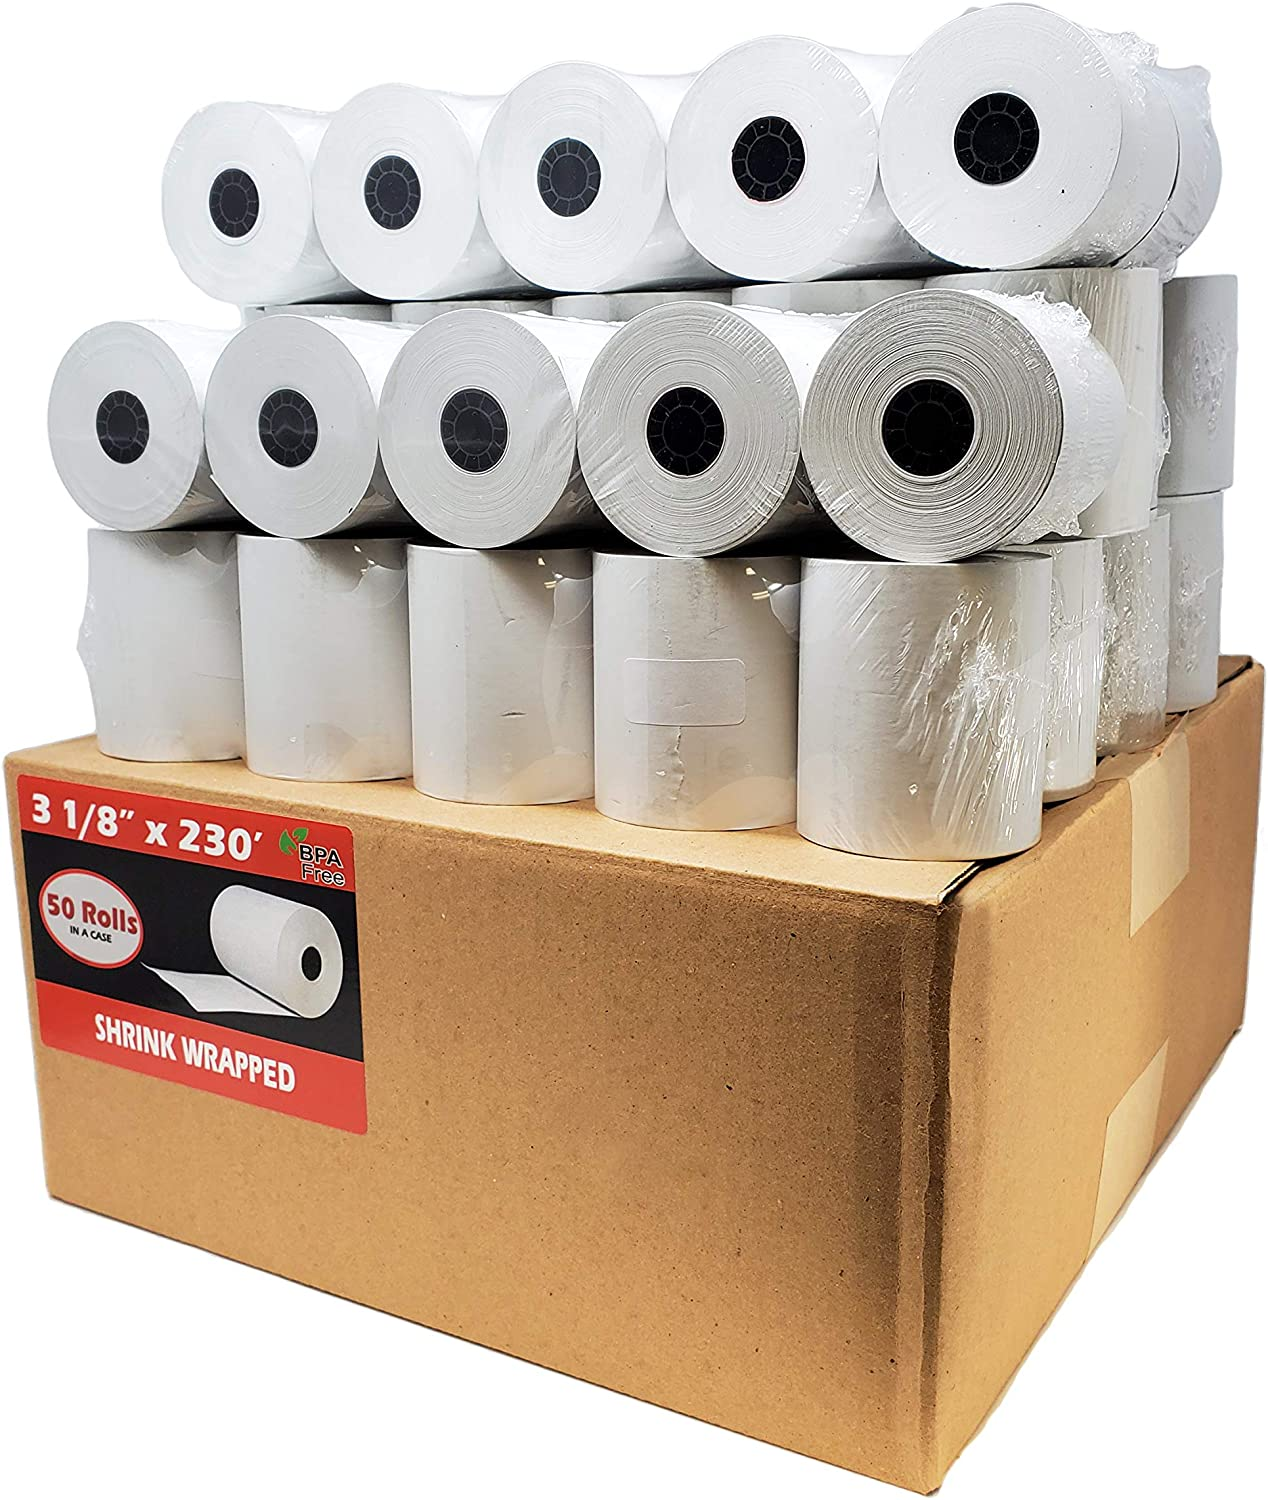 BuyRegisterRolls (50 Rolls - Core) 3 1/8 x 230 (48 GSM Paper Thickness) BPA Free Premium A Grade POS Thermal Receipt Printer Paper : Everything Else